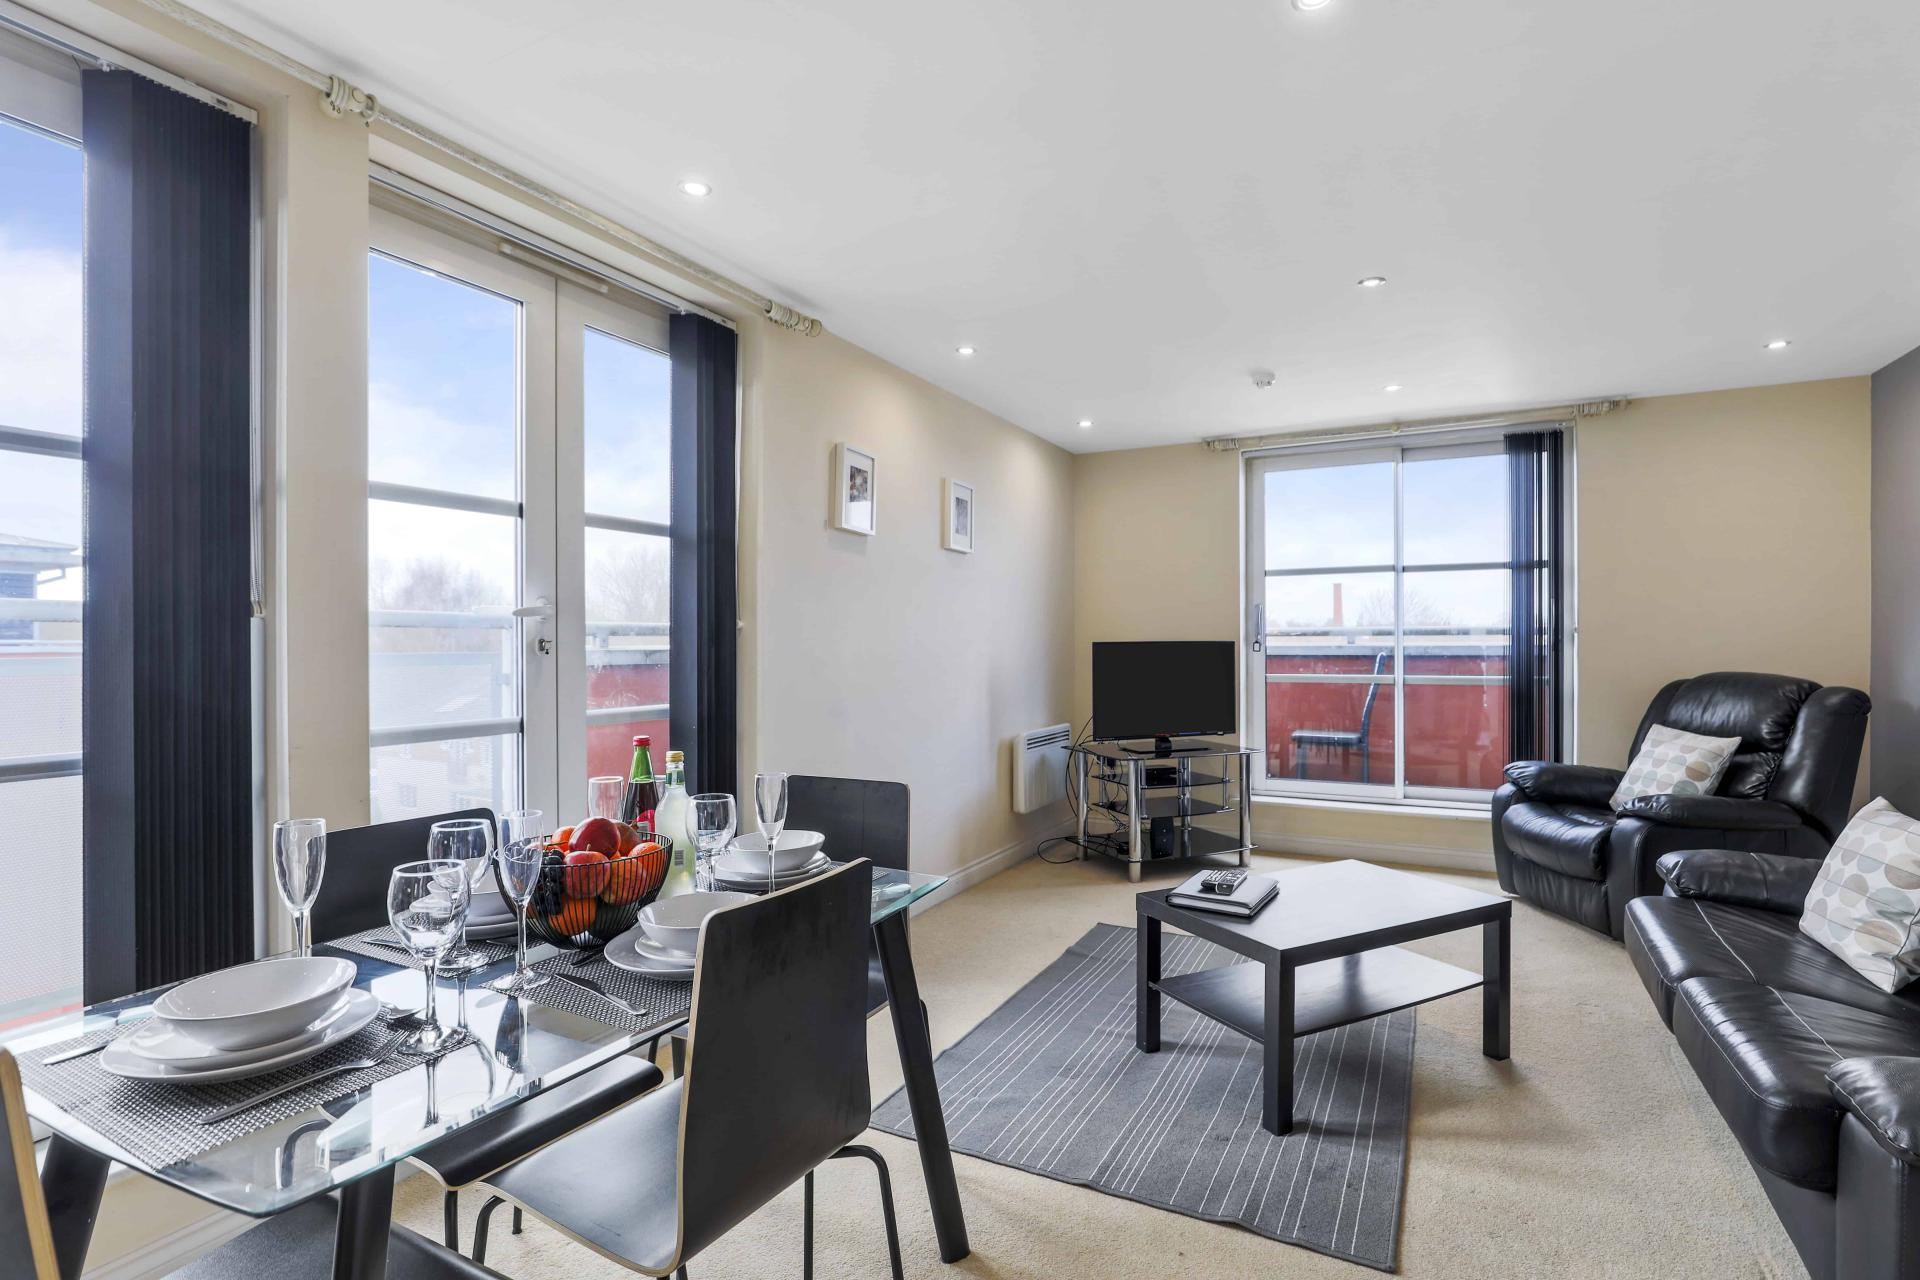 Lounge at Freemens Meadow Apartments, Freemens Meadow, Leicester